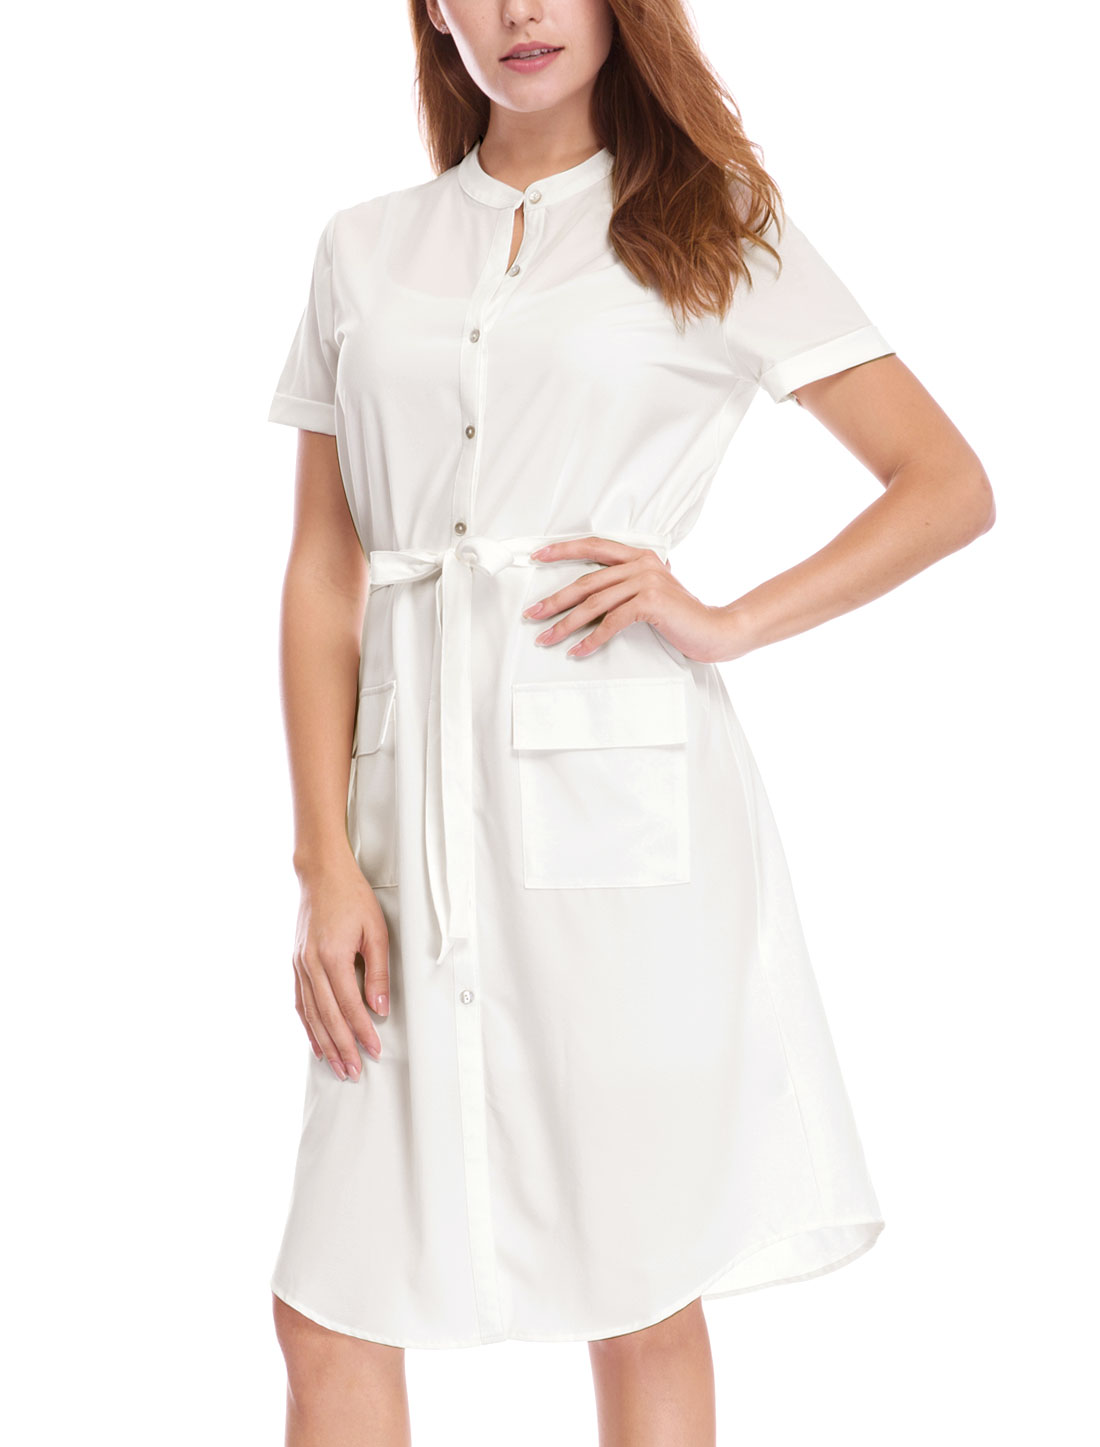 Women Short Sleeves Pockets Belted Midi Shirt Dress Off White XS